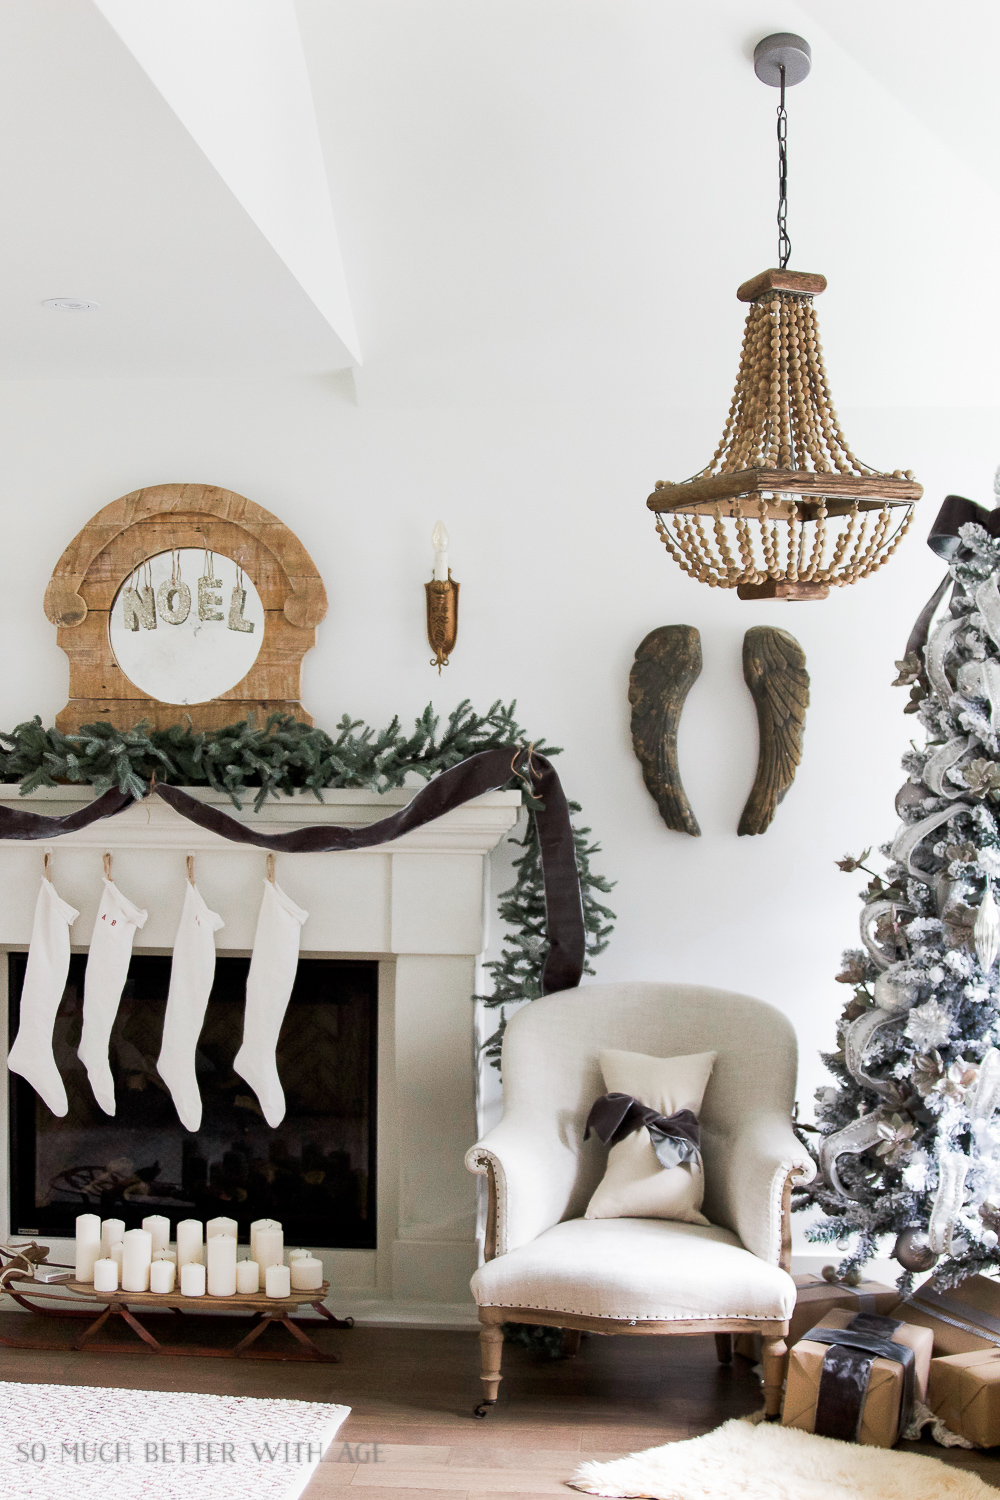 Fireplace mantel with green garland, European stockings - Christmas Mantel 2016